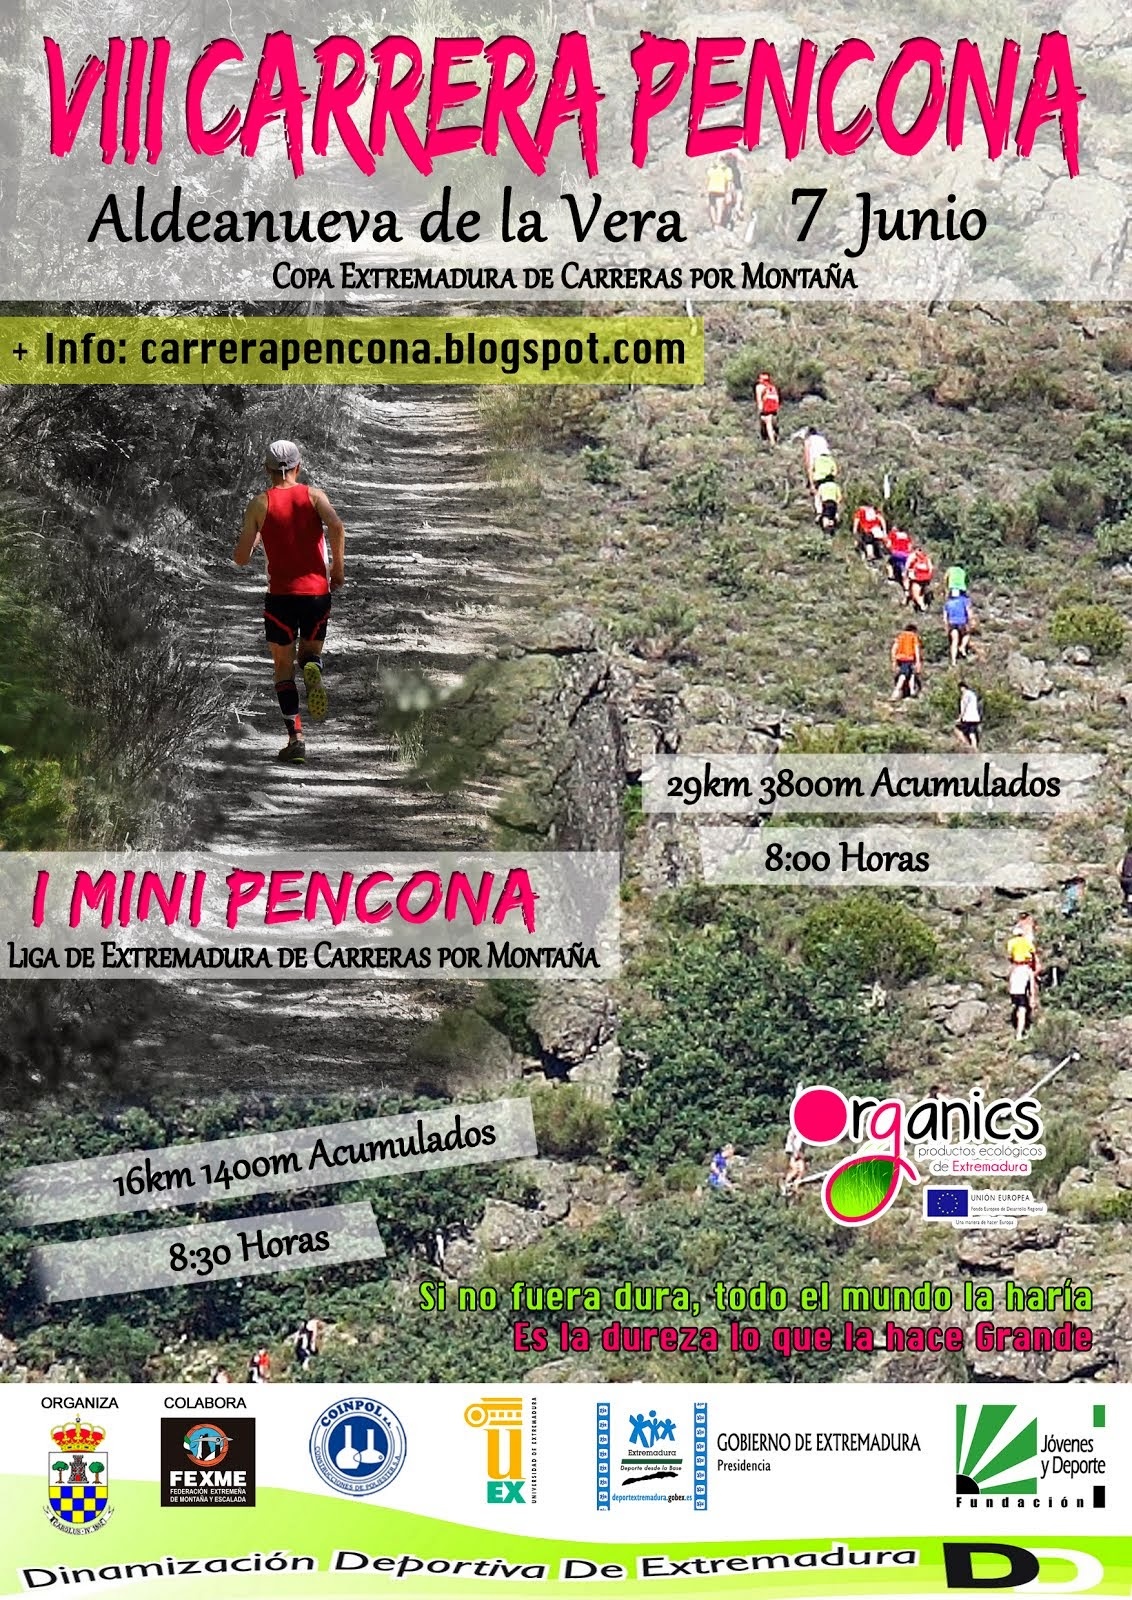 VIII CARRERA PENCONA Domingo 7 Junio 8:00